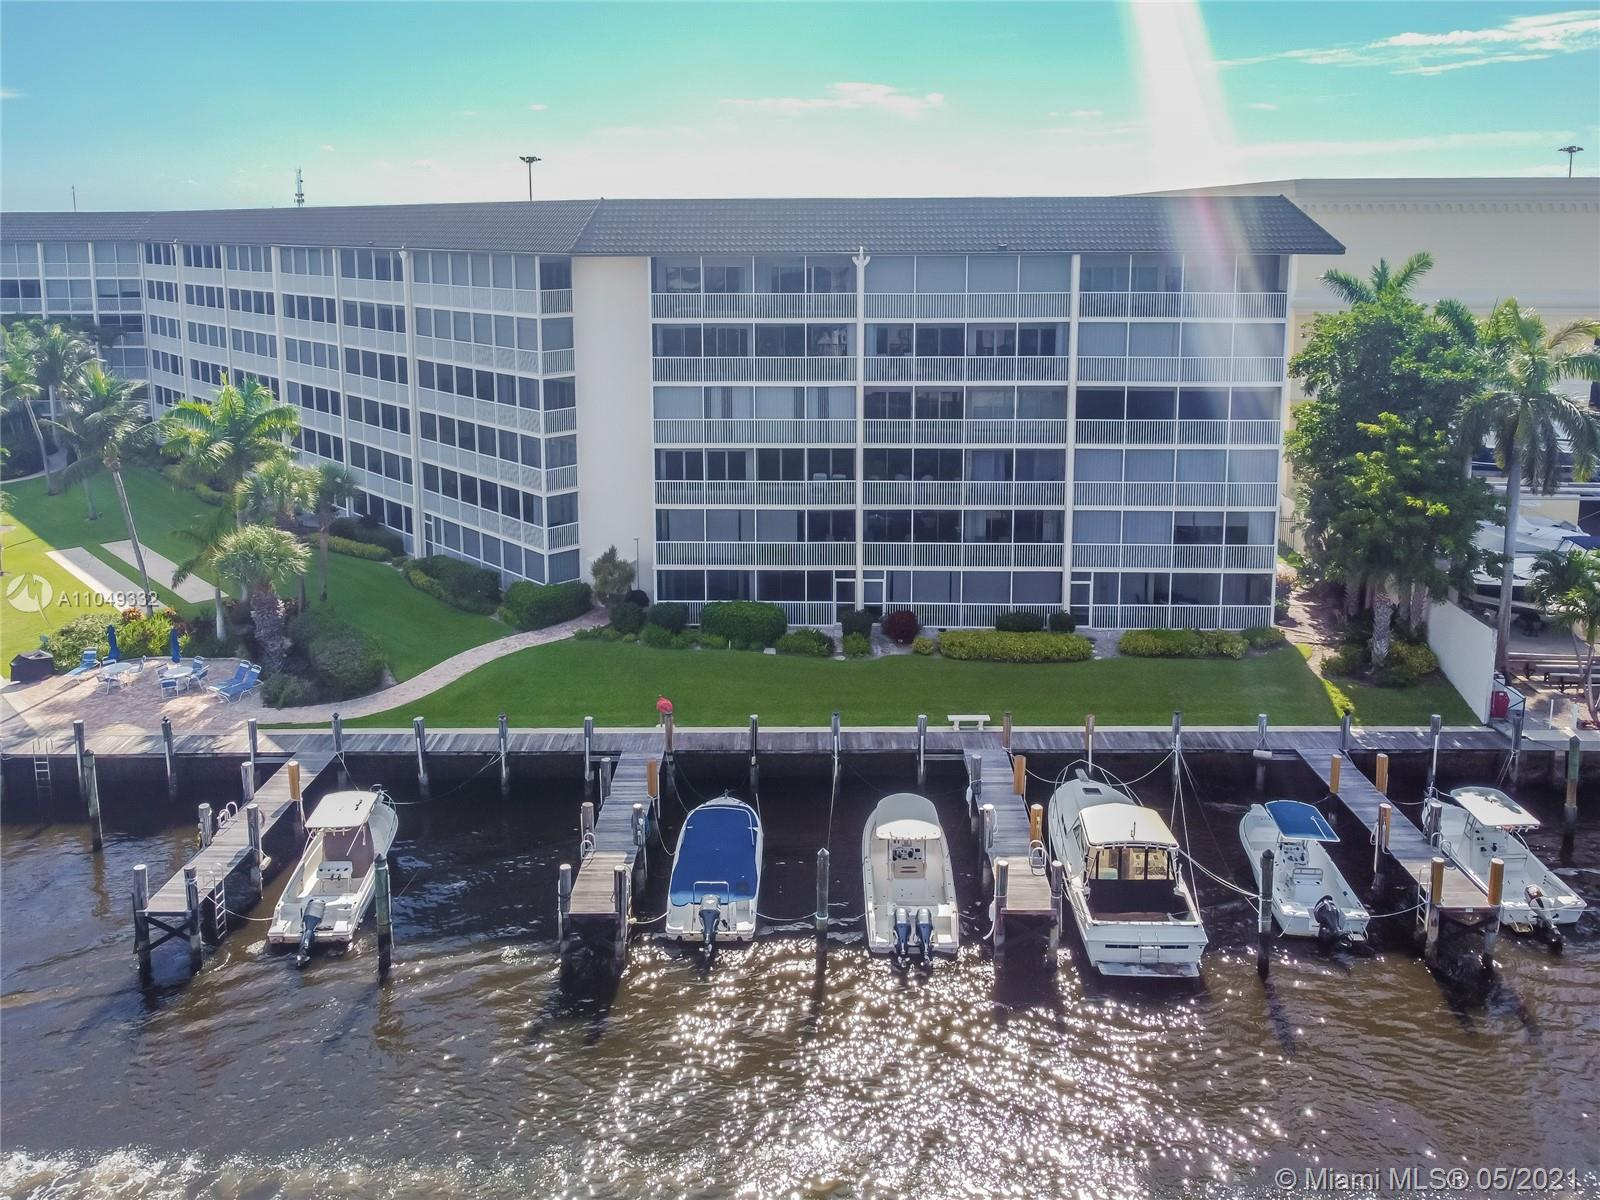 Charming Waterfront Condo! This lovely home offers a great layout with a delightful kitchen that off